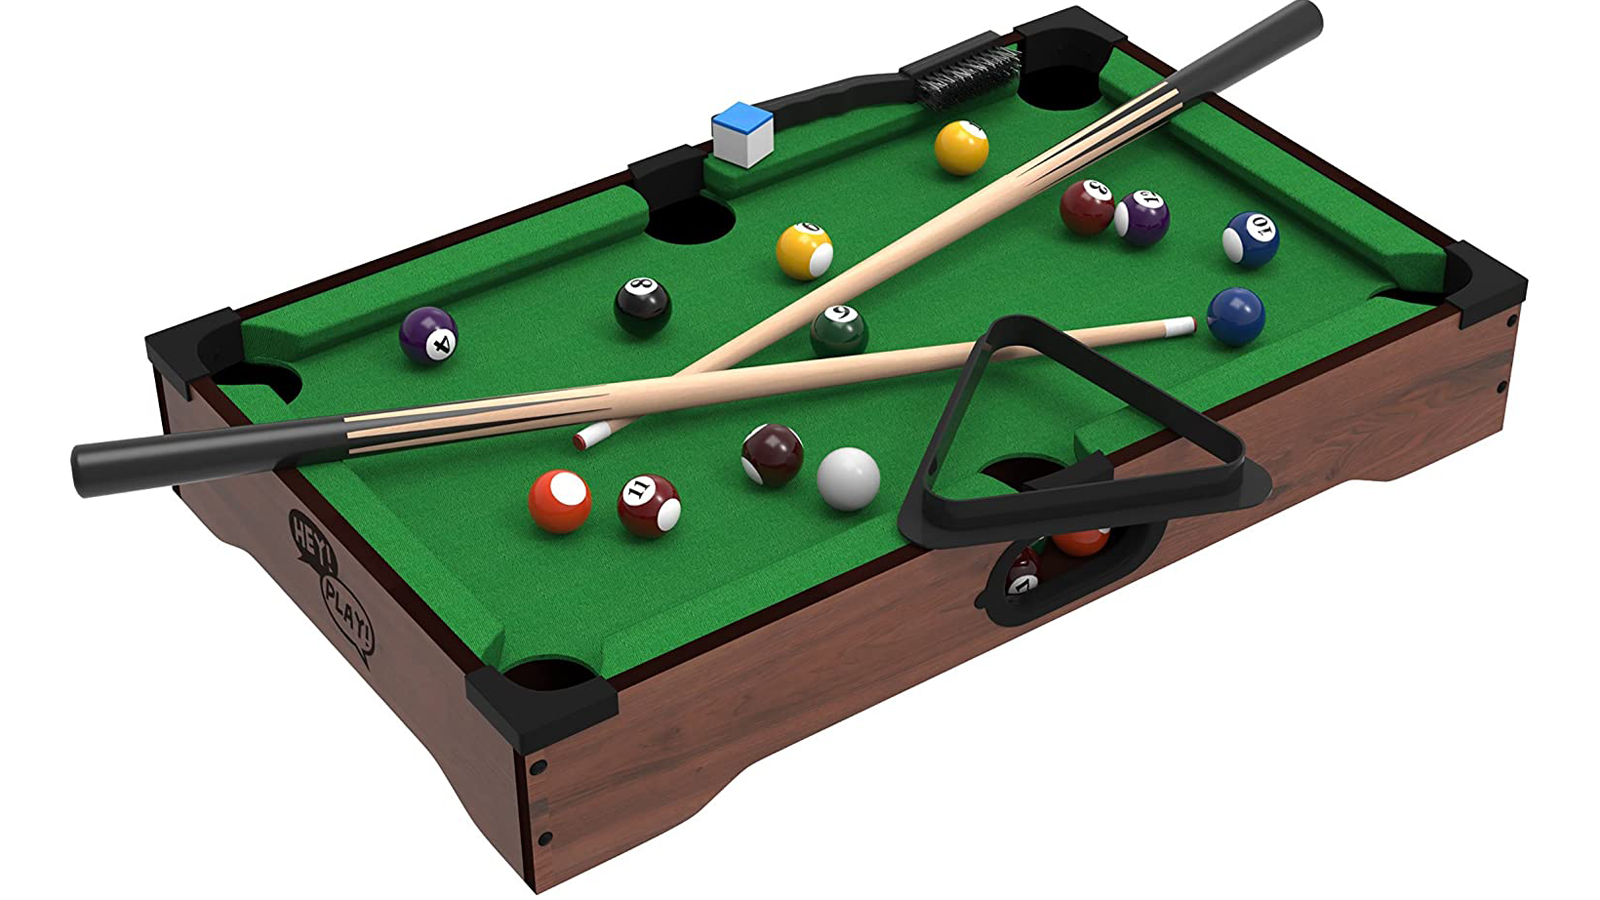 Mini Desktop Game of billiards complete with cue sticks, balls, chalk, and a triangle rack